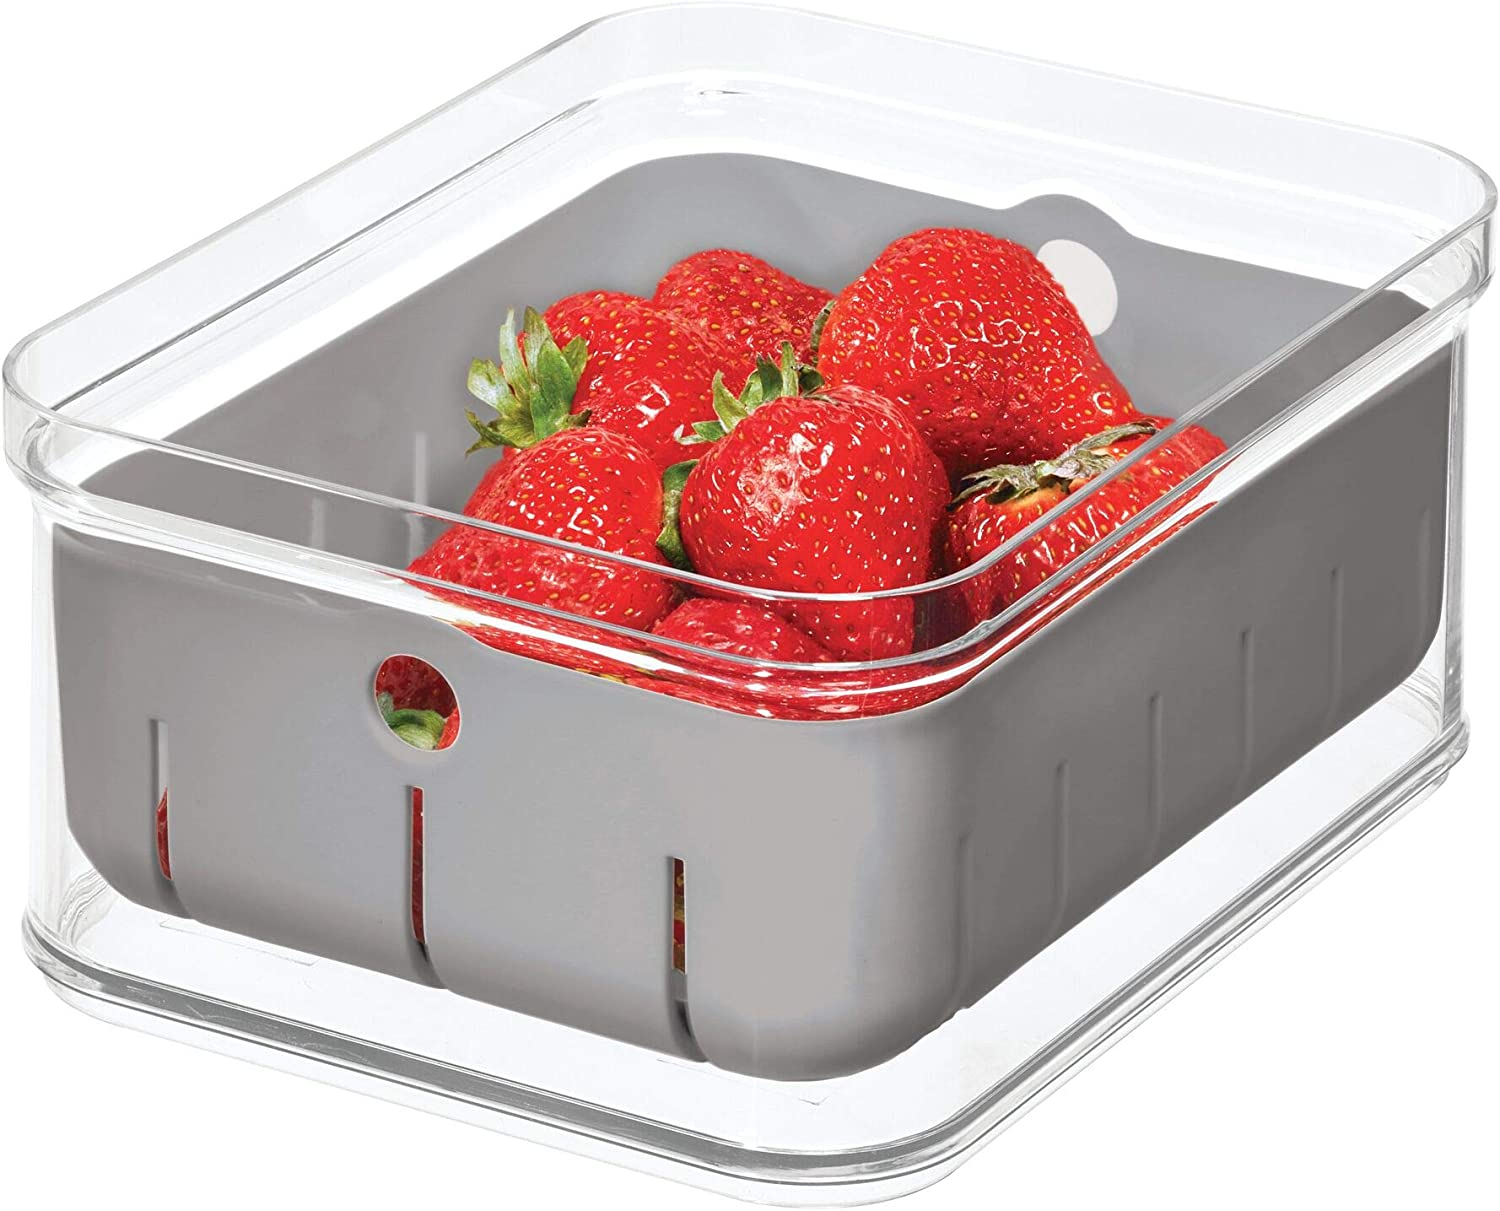 """iDesign Crisp Plastic Refrigerator and Pantry Modular Bin with Removable Inner Basket Perfect for Washing Berries, Fruit, Vegetables, BPA Free, 8.32"""" x 6.32"""" x 3.88"""","""